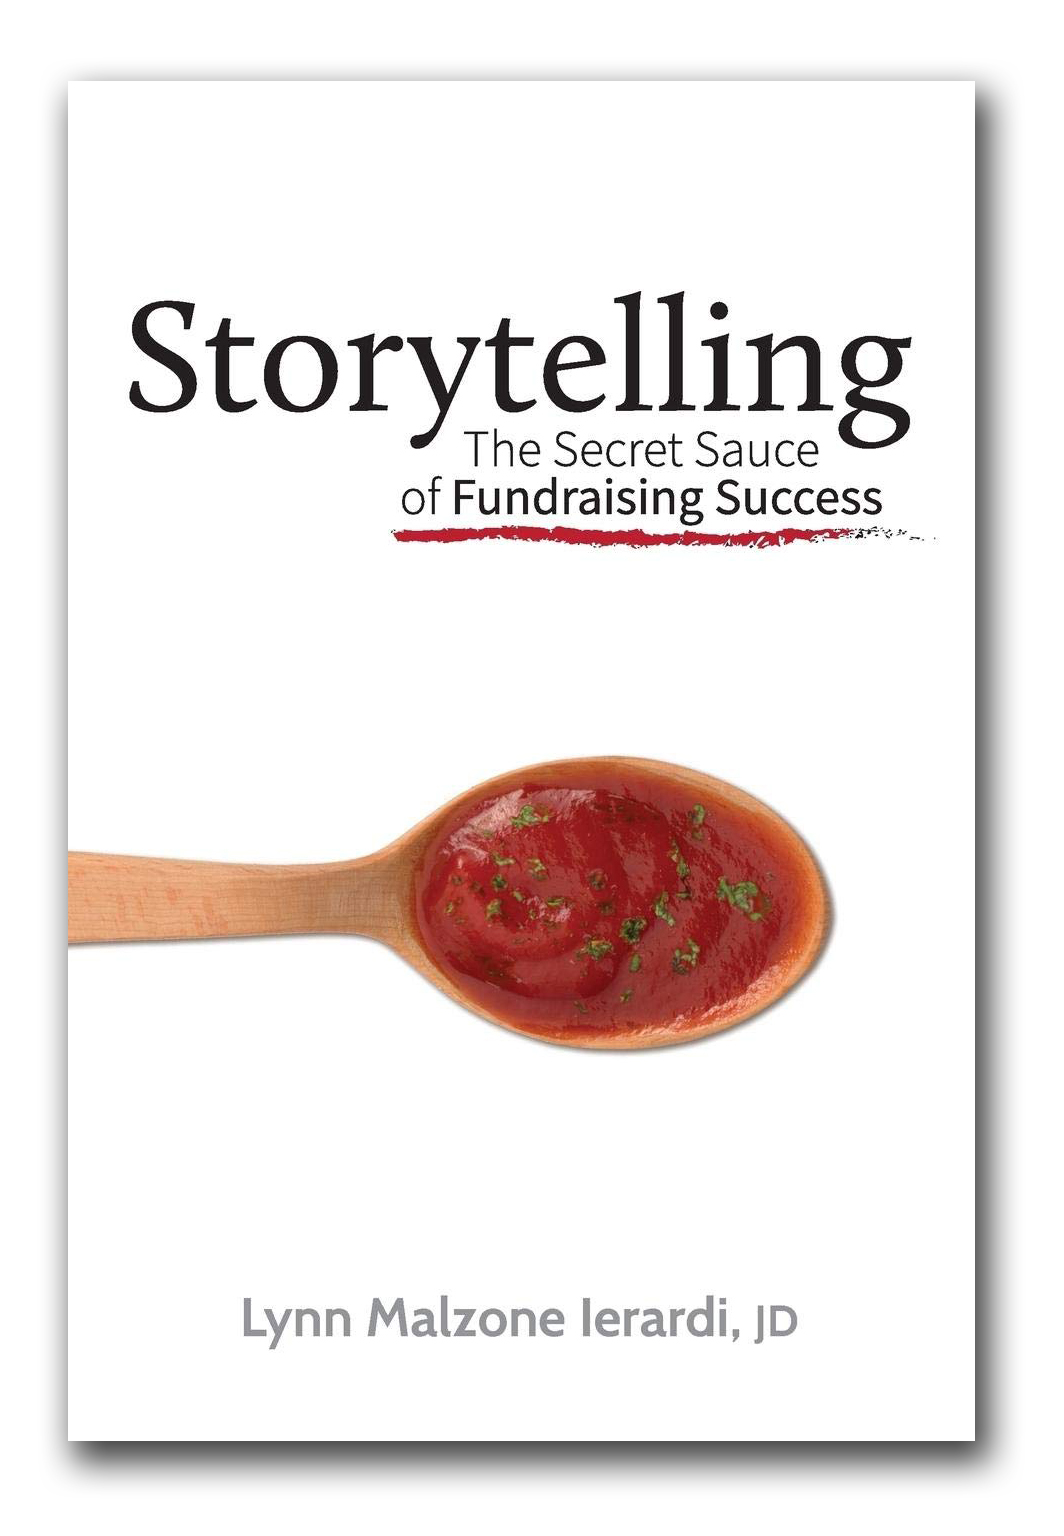 Storytelling: The Secret Sauce of Fundraising Success book